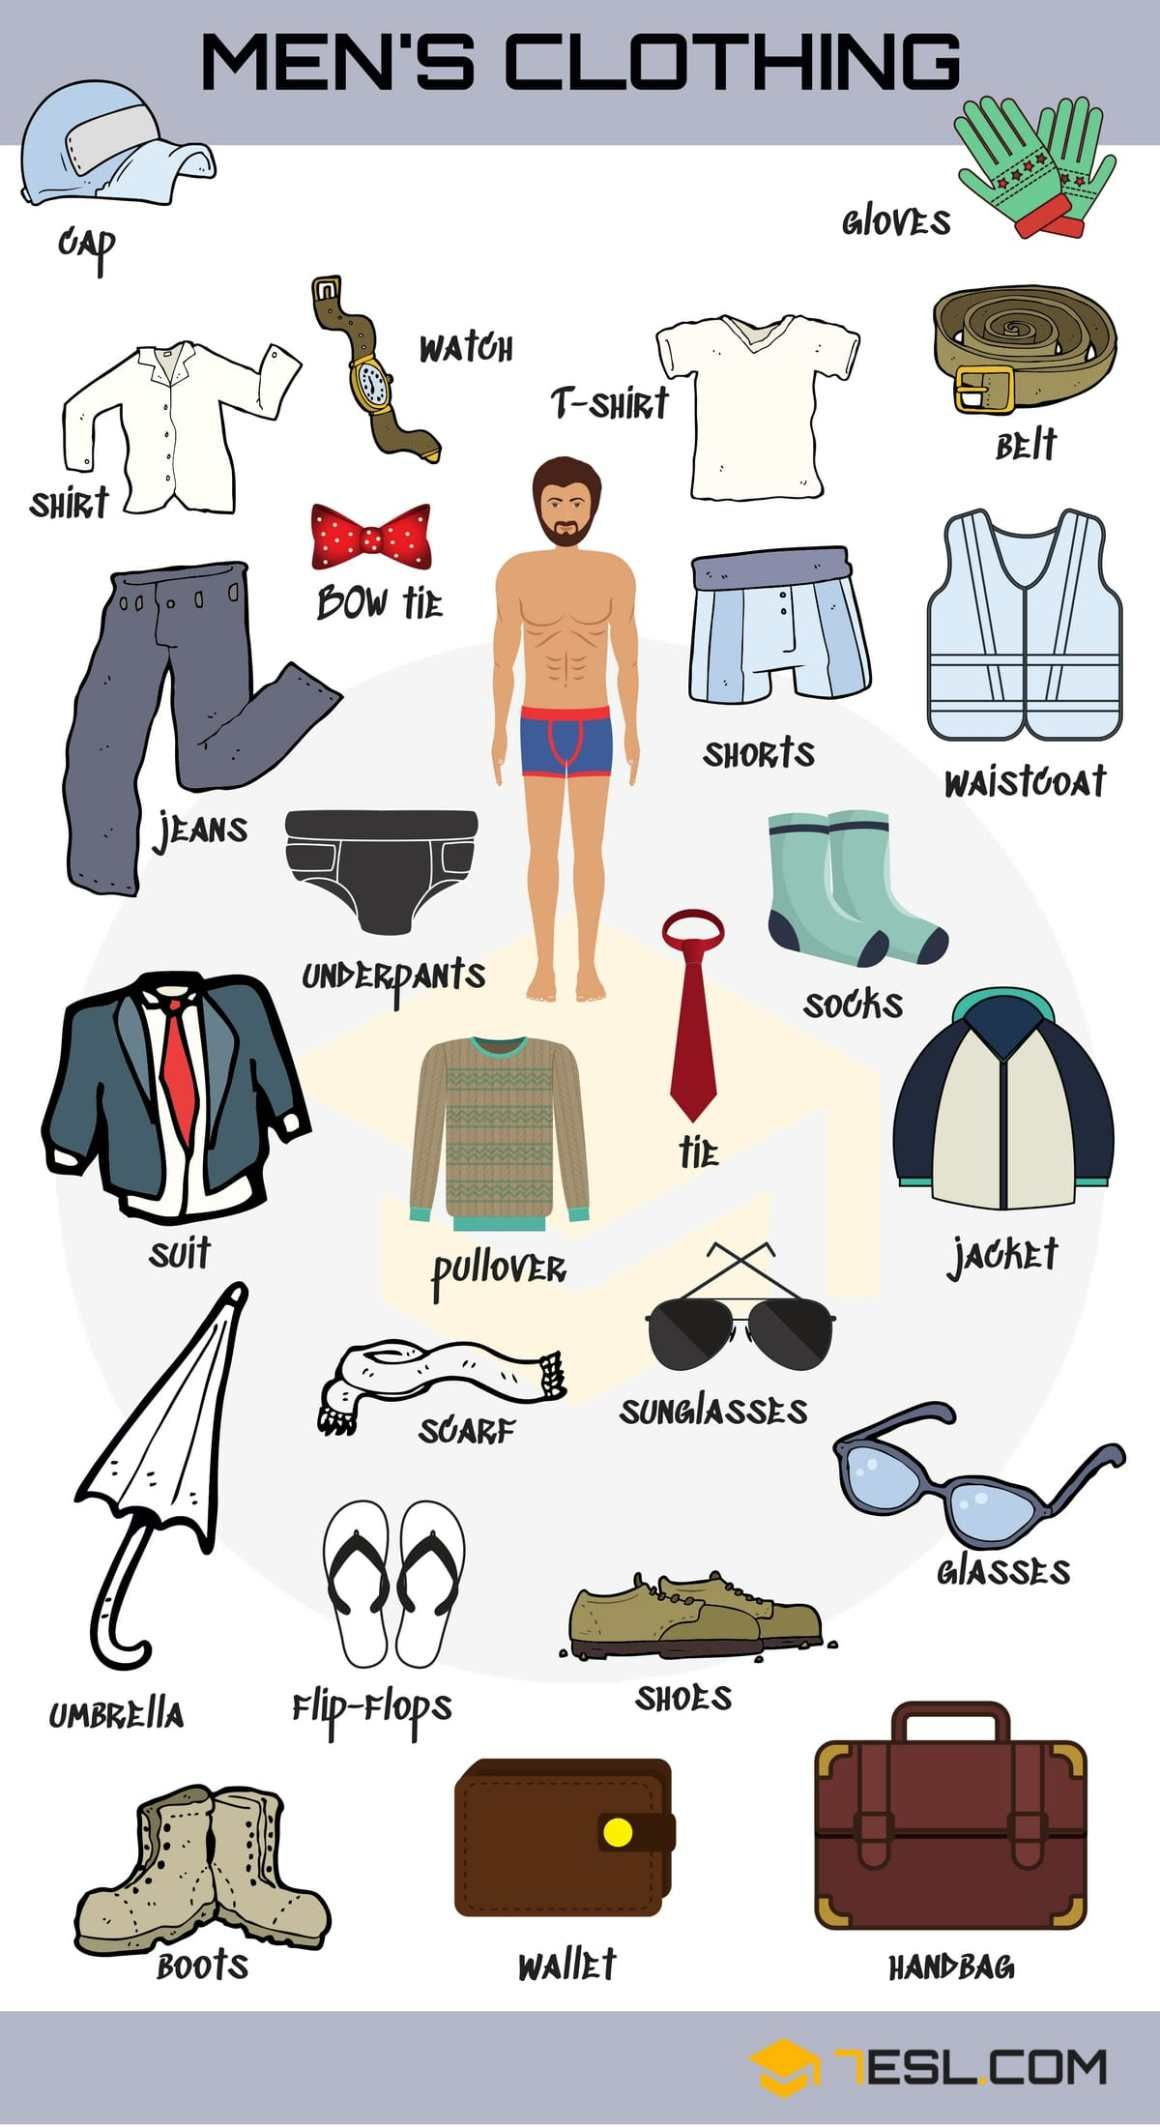 Wardrobe Traduction Francais Anglais Clothes Vocabulary Learn Clothes Name With Pictures